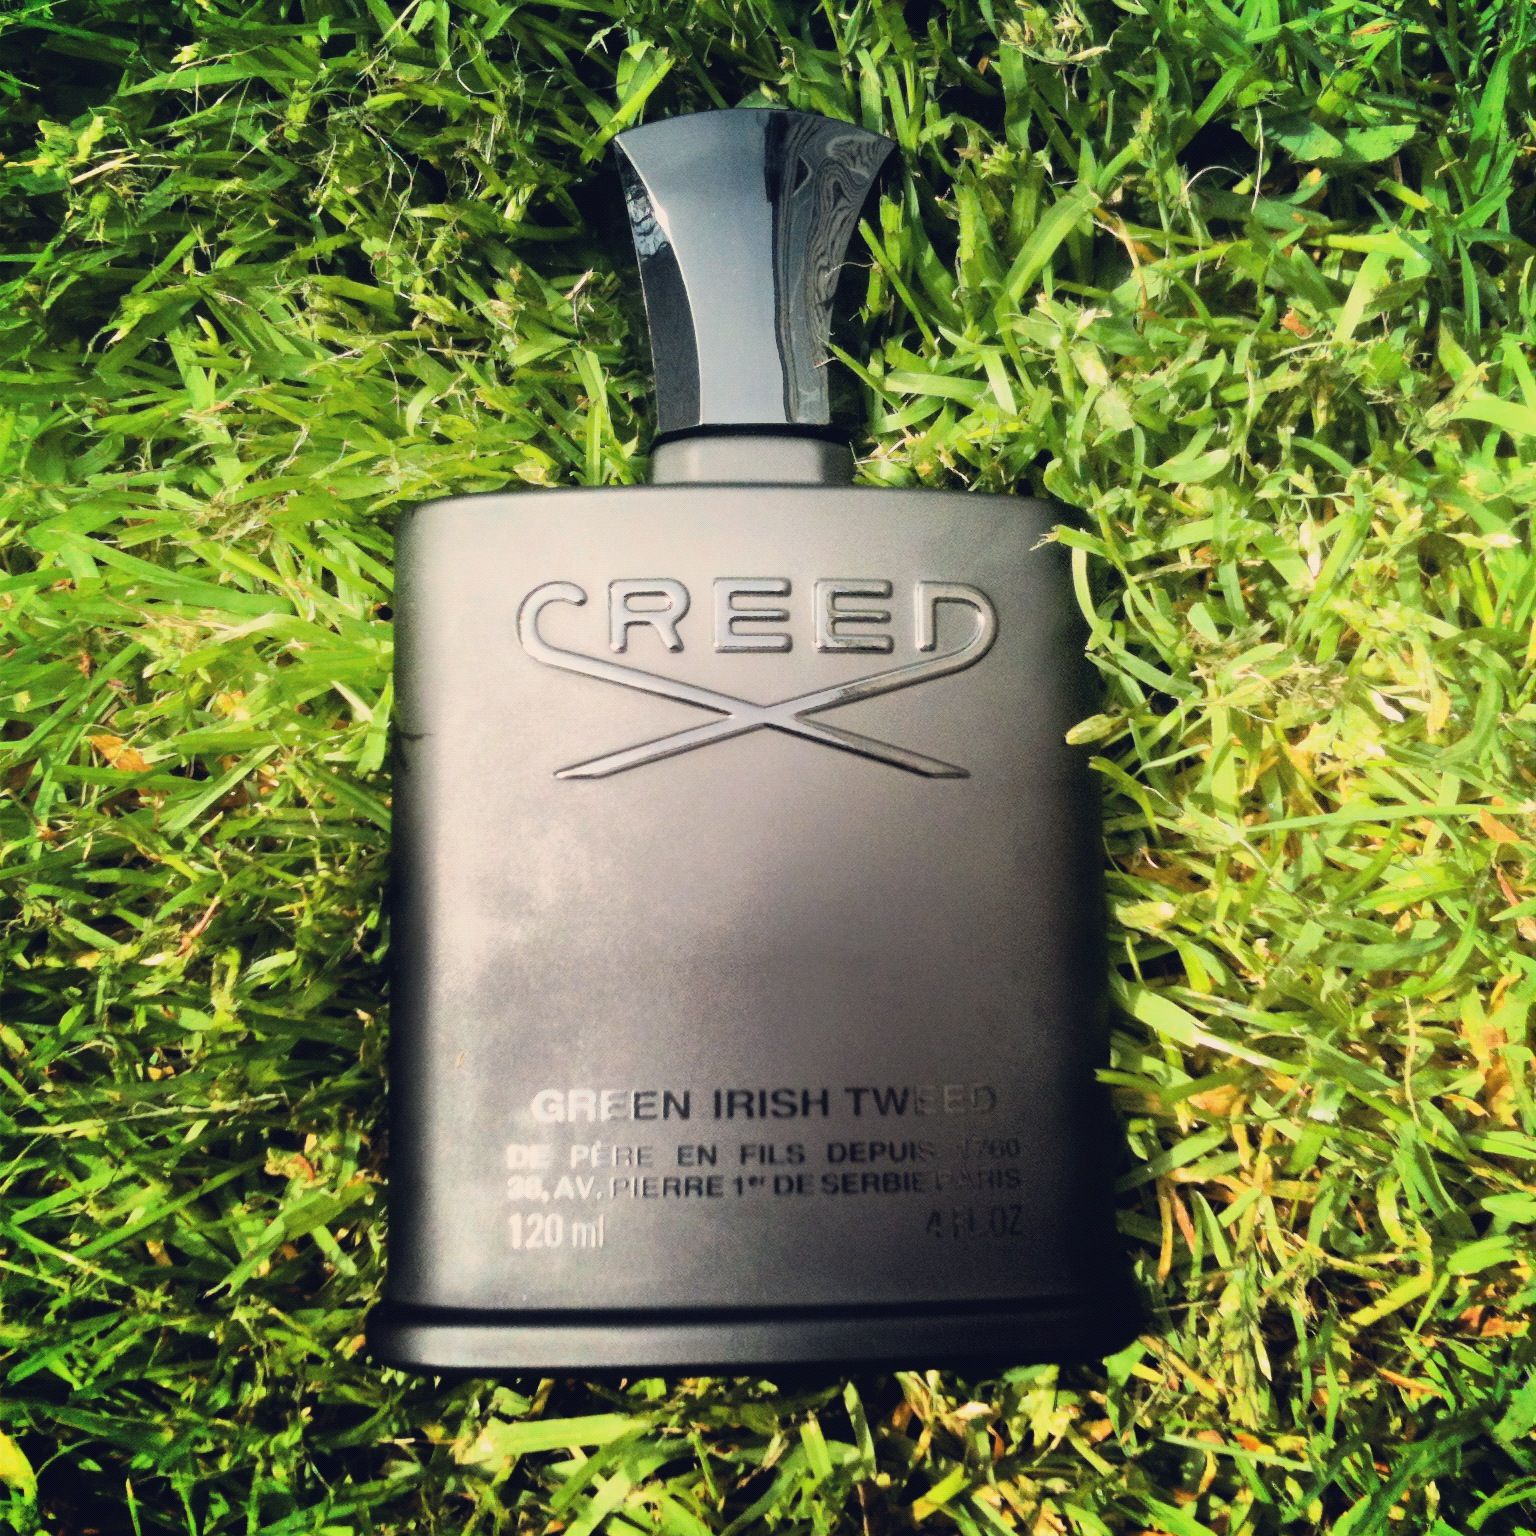 Great For Anytime Creed Green Irish Tweed Fragrance Cologne